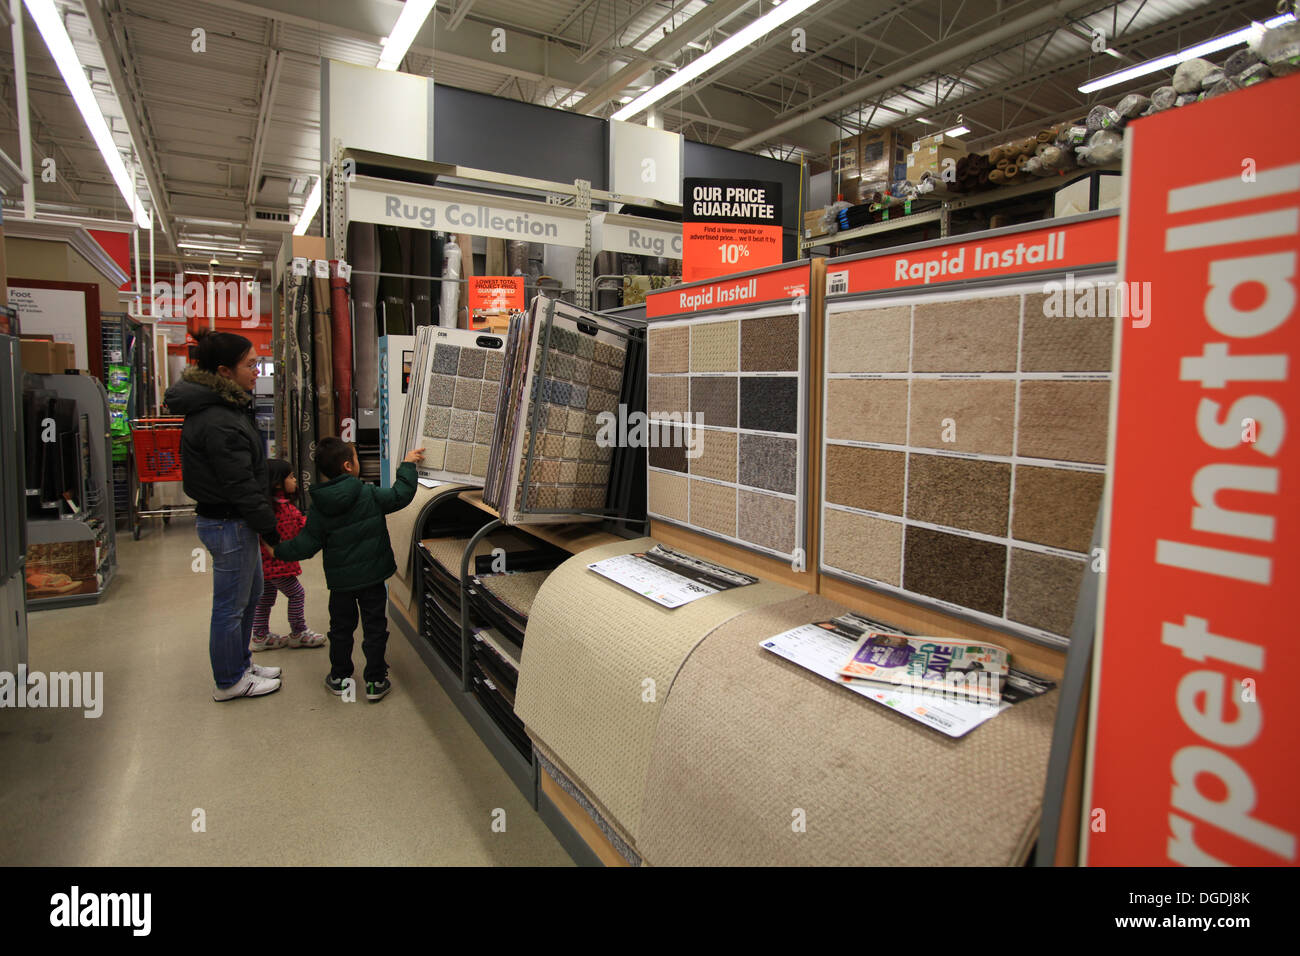 Home Depot Carpets Canada Flooring Carpet Samples On Display In The Home Depot